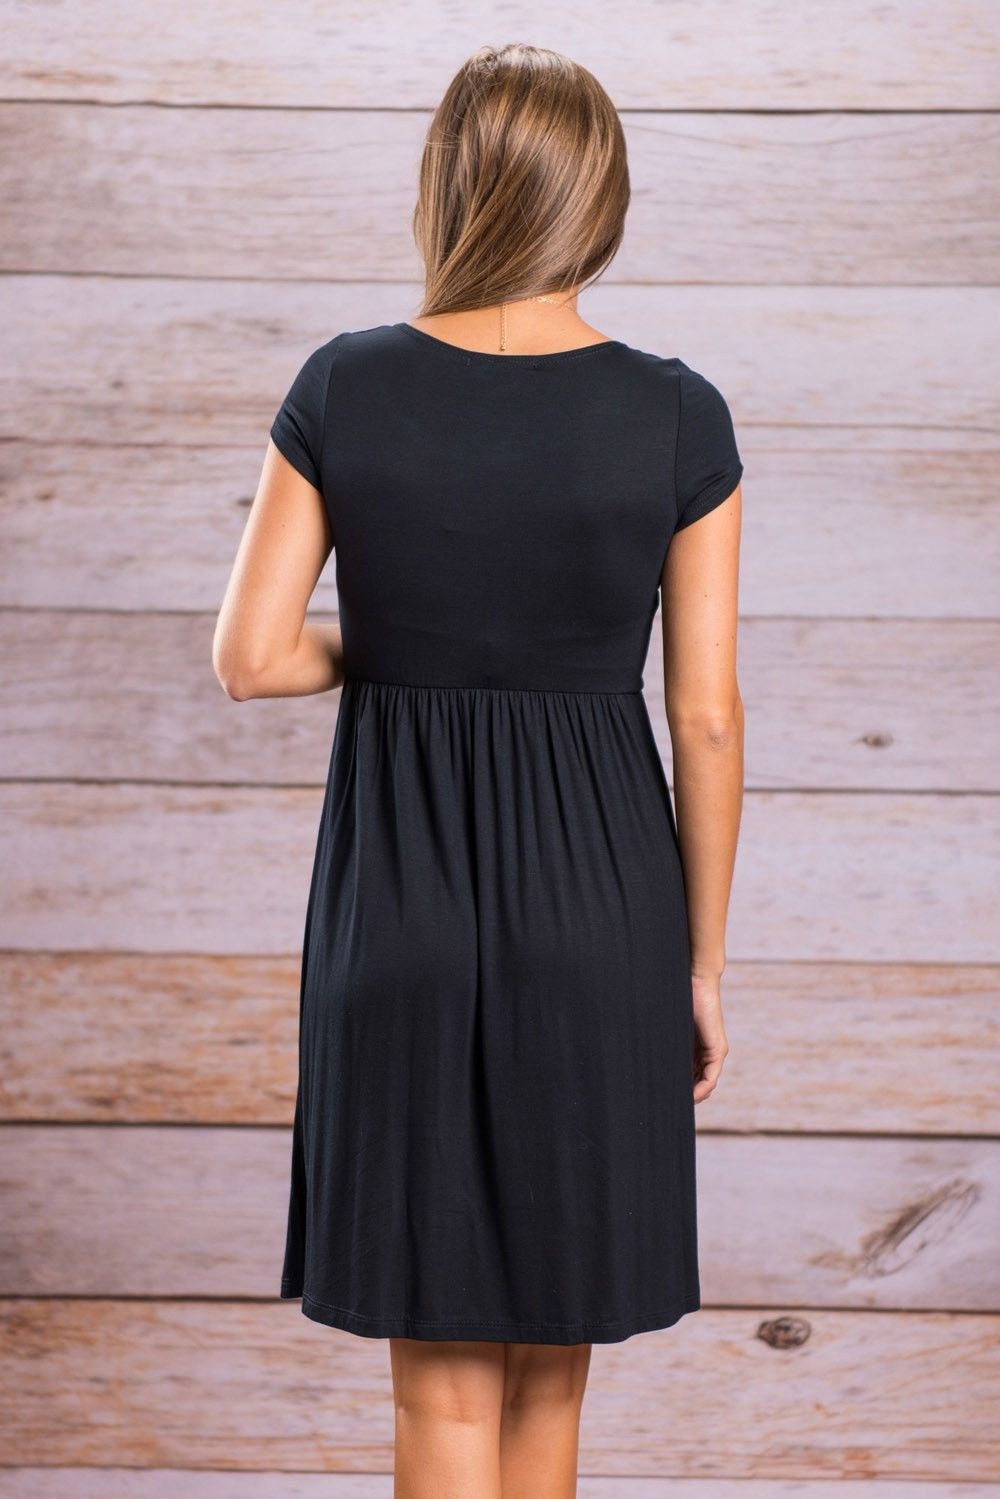 94443f3db4d Buy Generic Fashion Women Short Sleeve Solid Beach Casual Evening Party  Short Mini Dress in Egypt